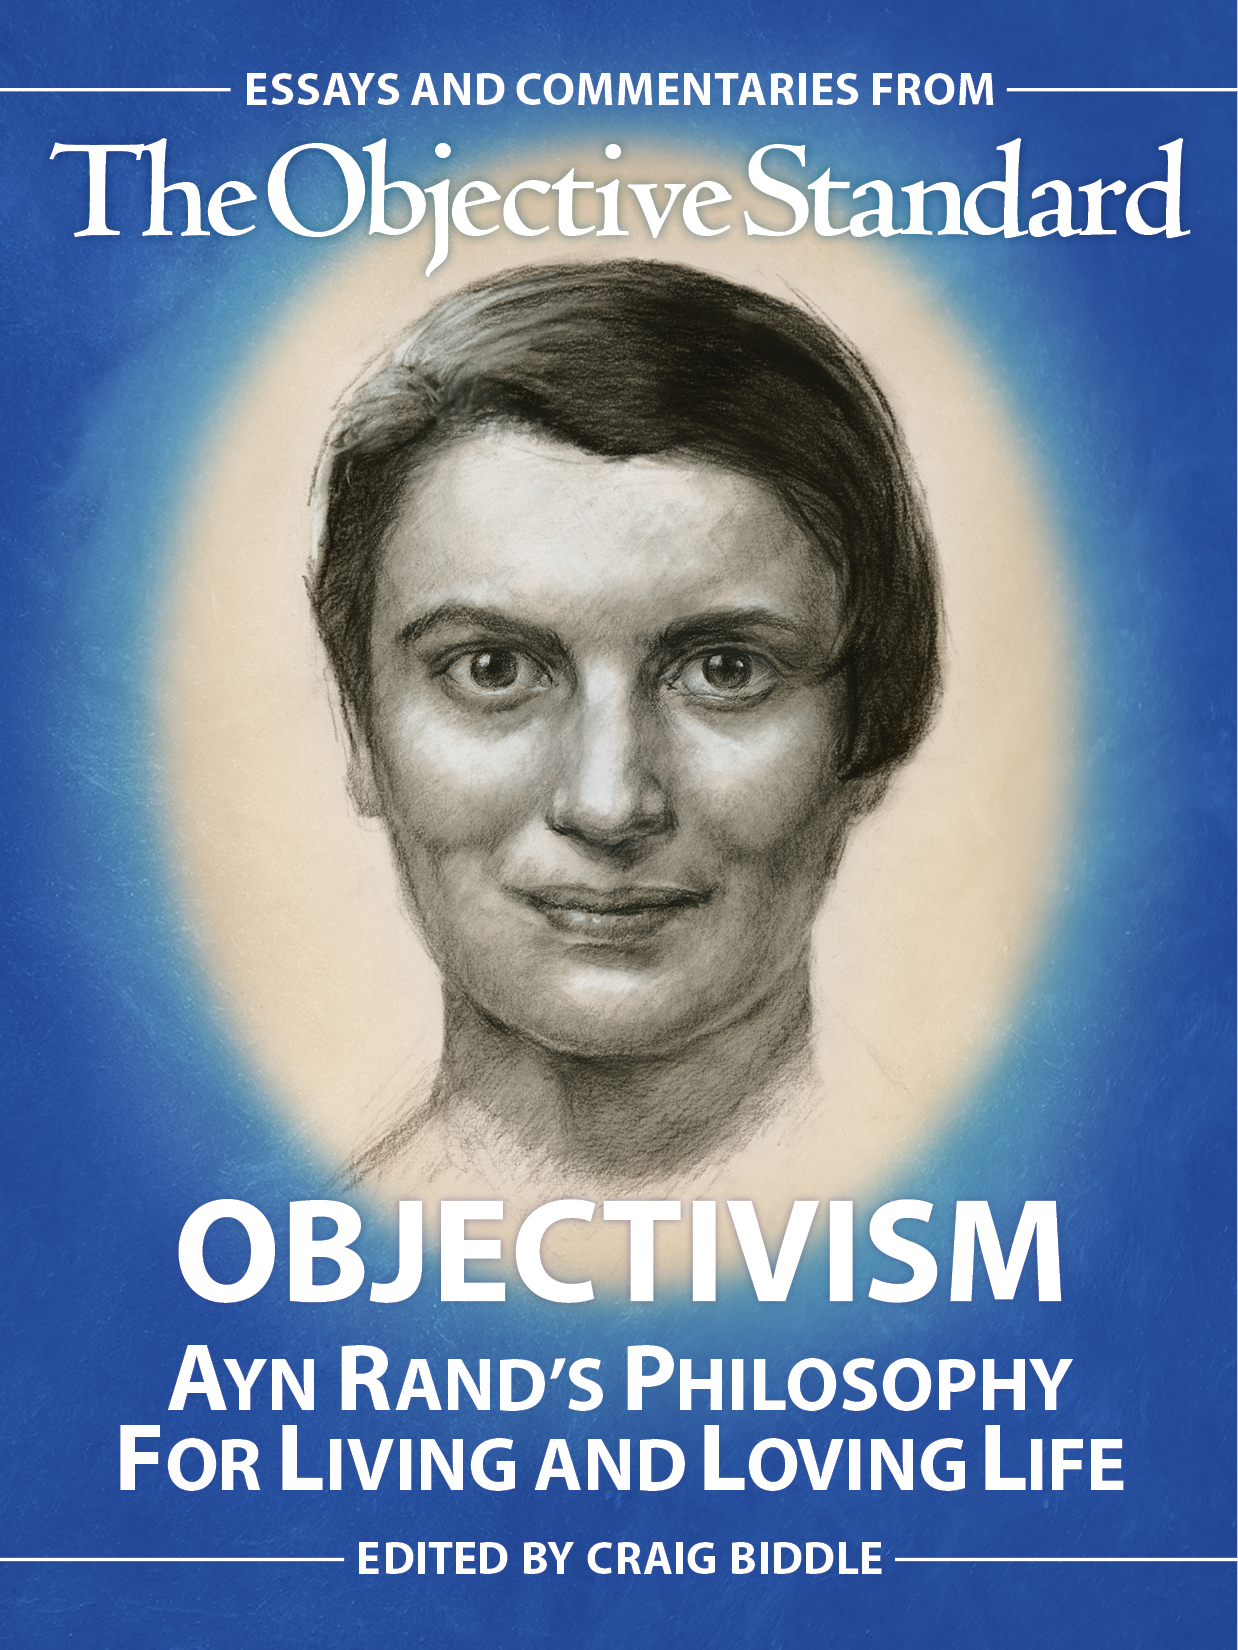 ayn rand biography a treacherous existence essay Anthem ayn rand buy share buy ayn rand biography critical essays he chooses to conceal both the existence of the tunnel and his experiments.